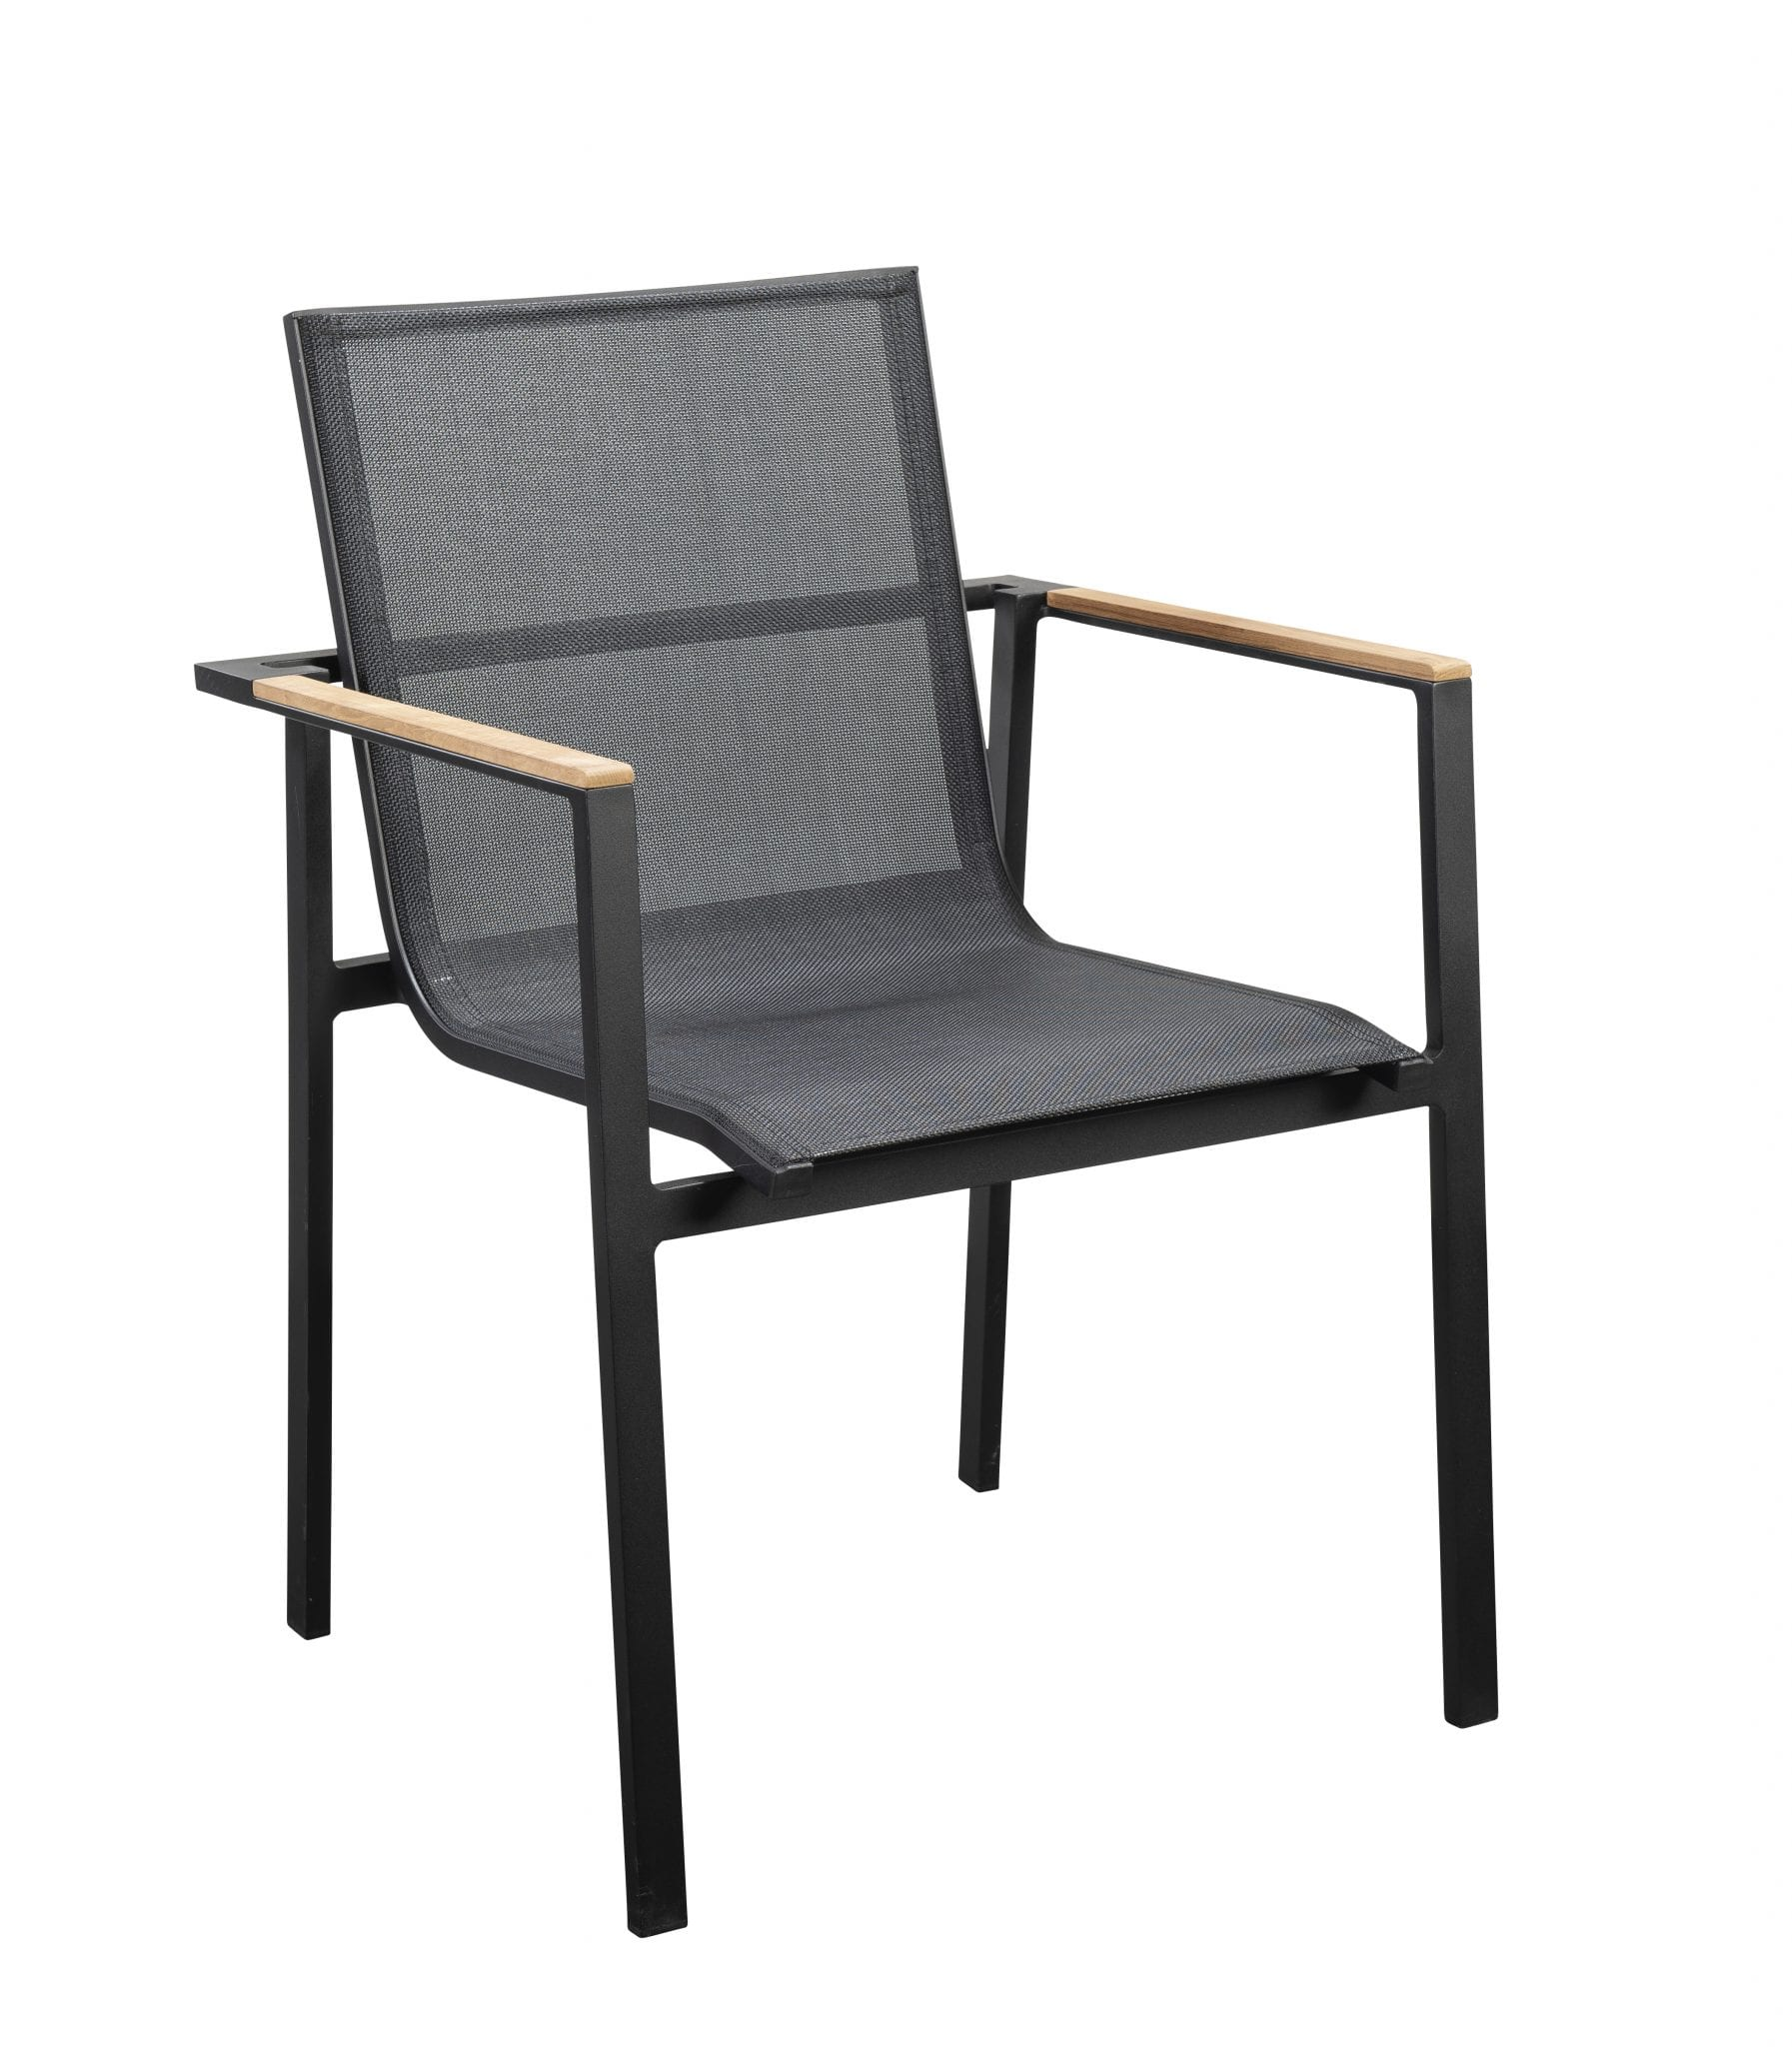 Mizu stackable dining chair - black | Yoi Furniture